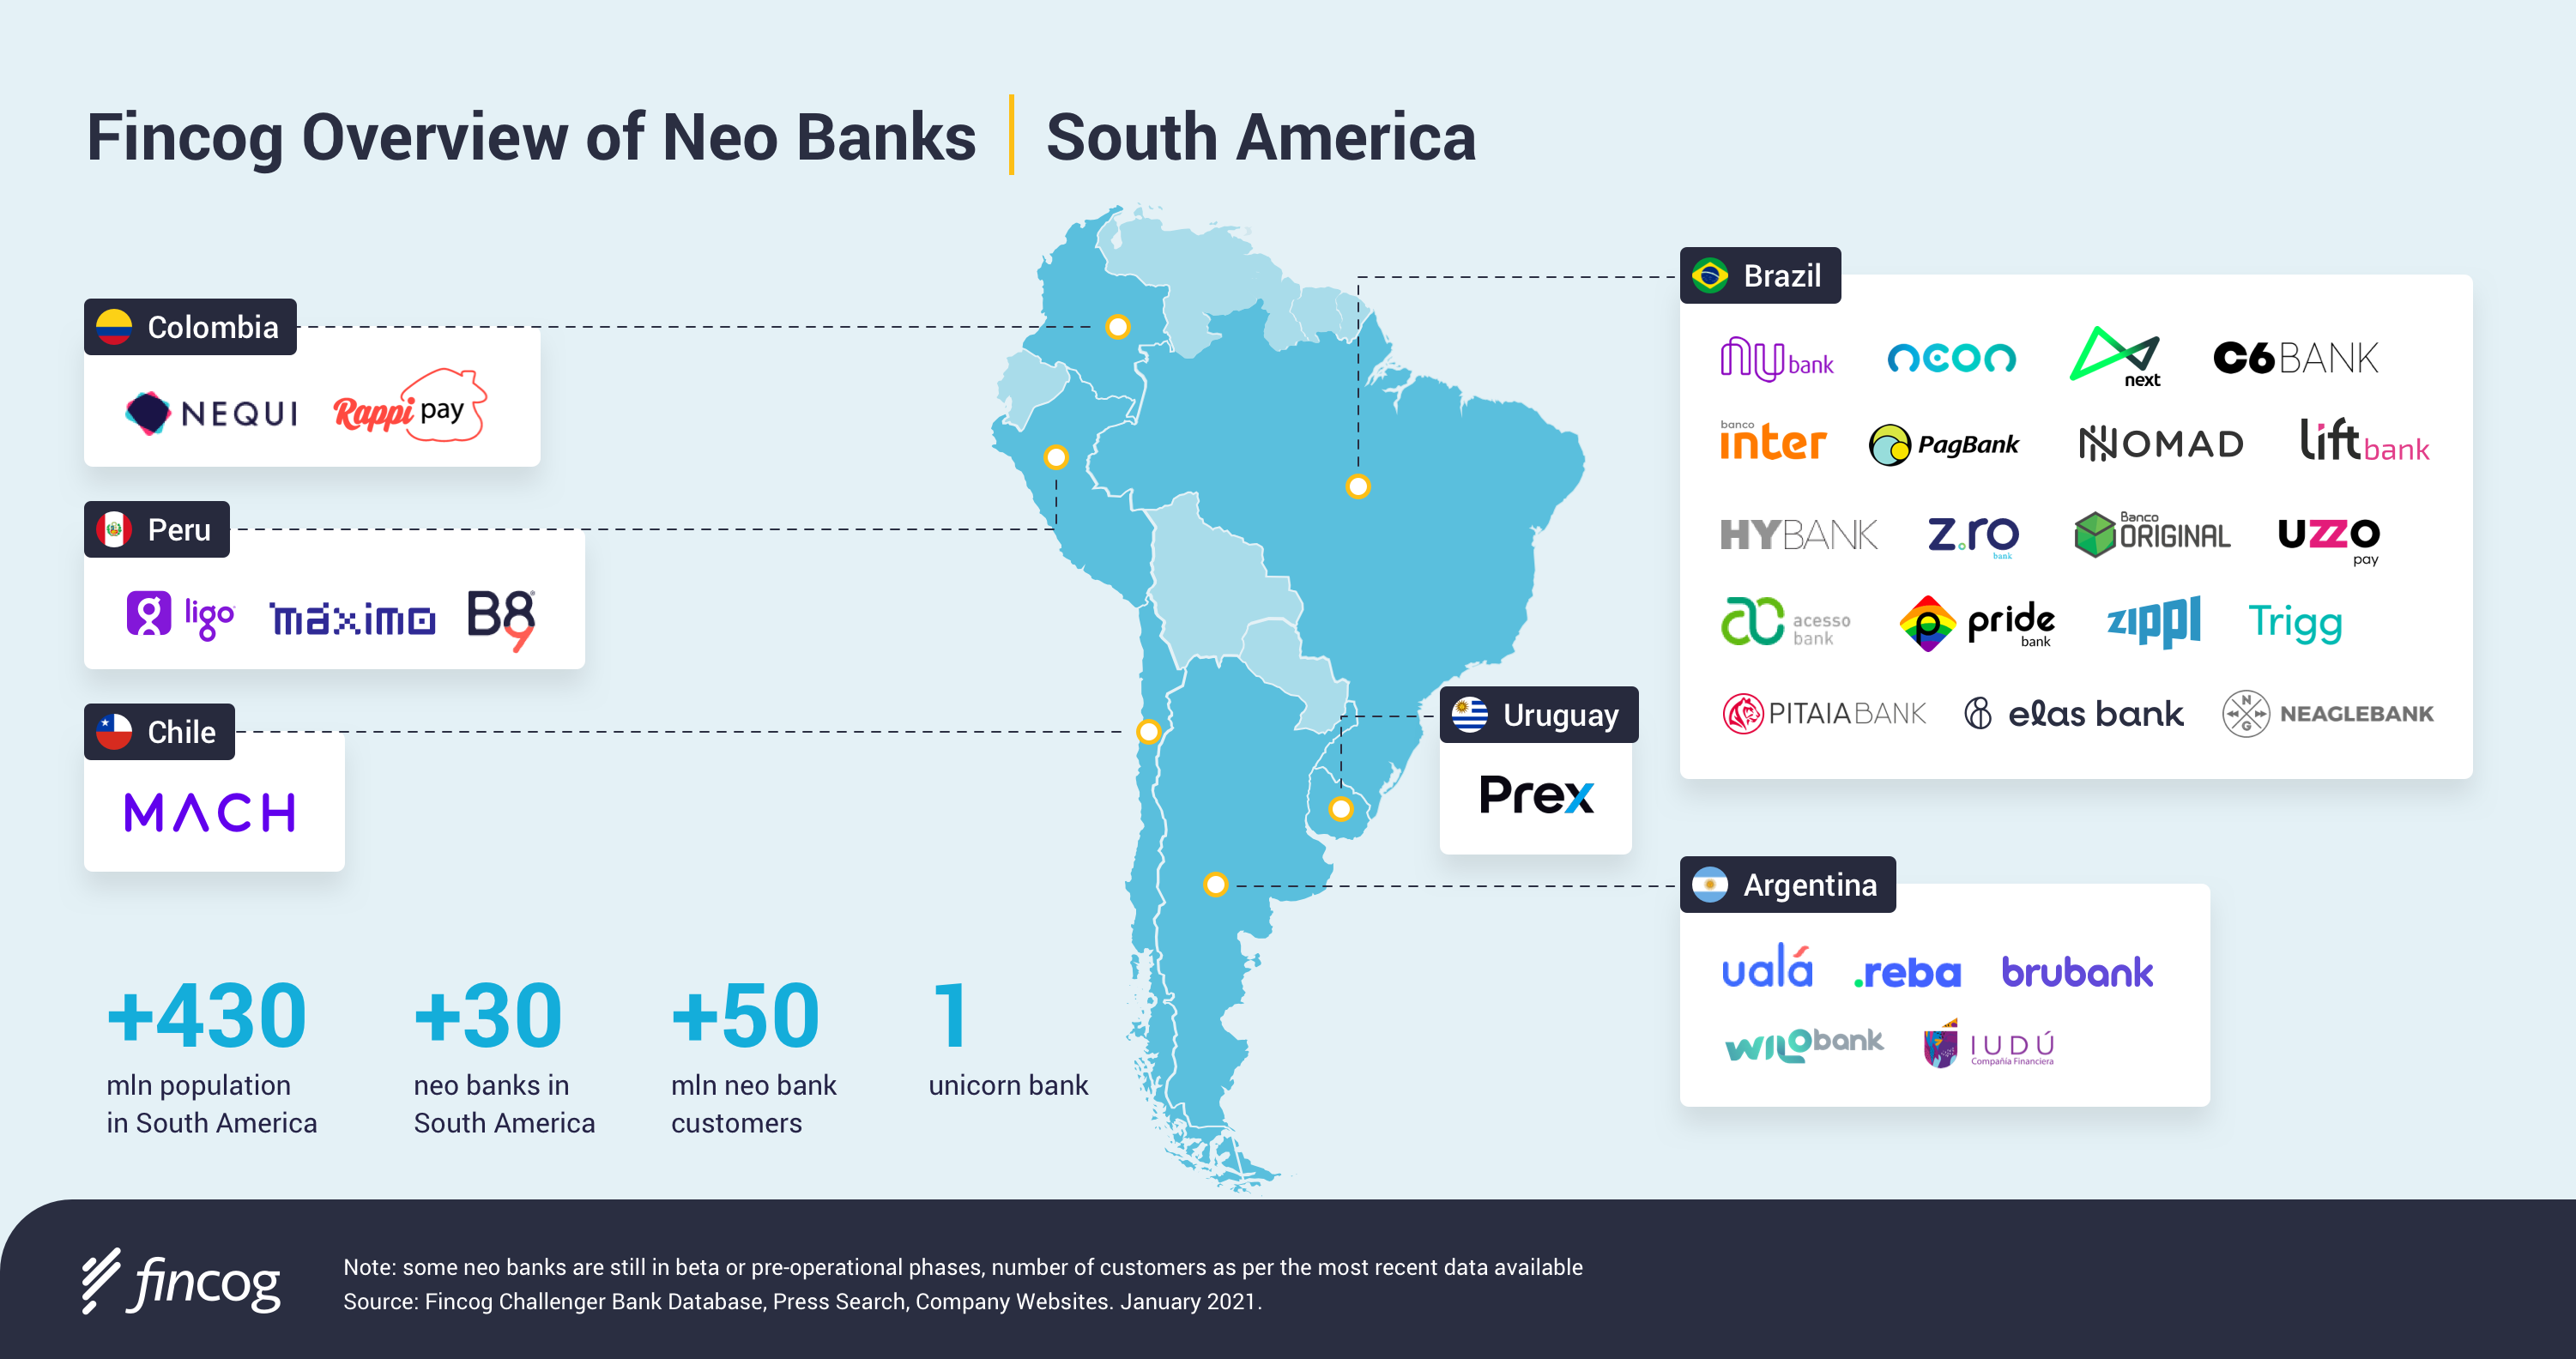 Fincog Overview of Neo Banks in South America, Jan 2021